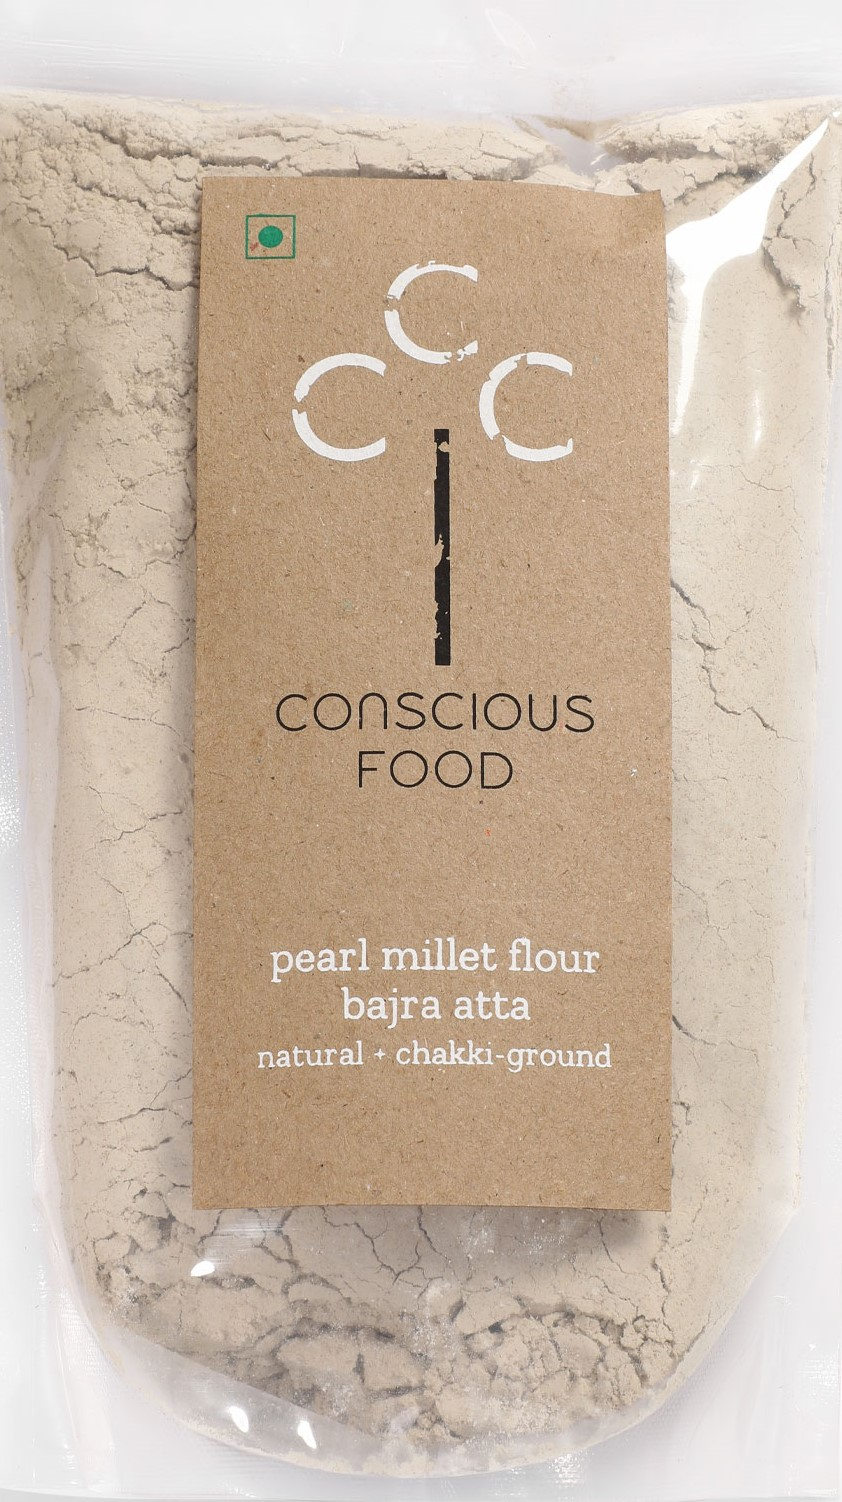 Pearl Millet Flour by Conscious Foods